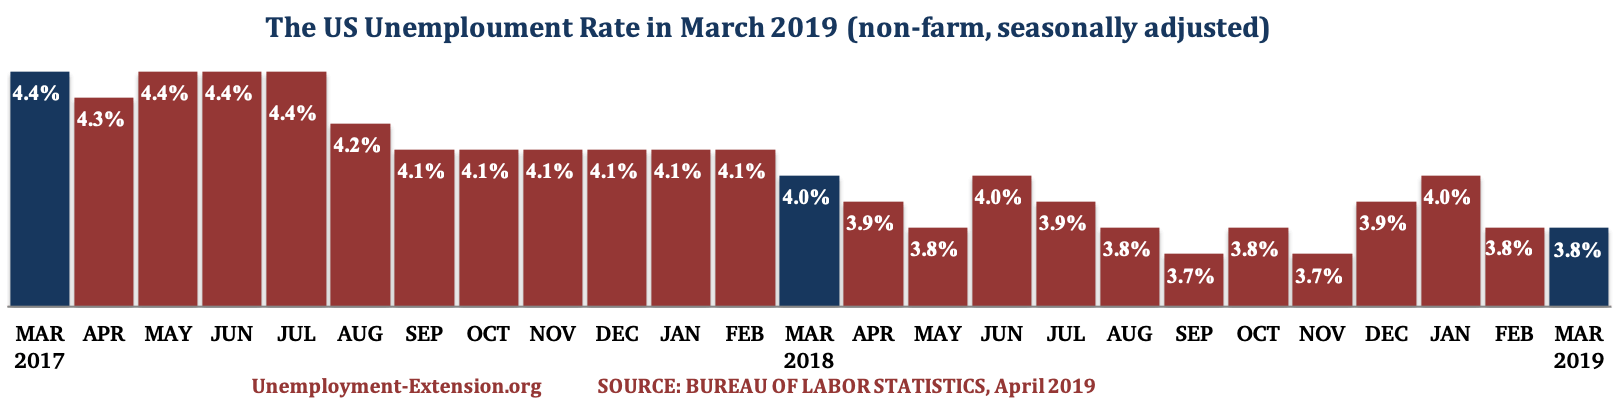 The US Unemployment Rate in the past 25 months as of April of 2019.